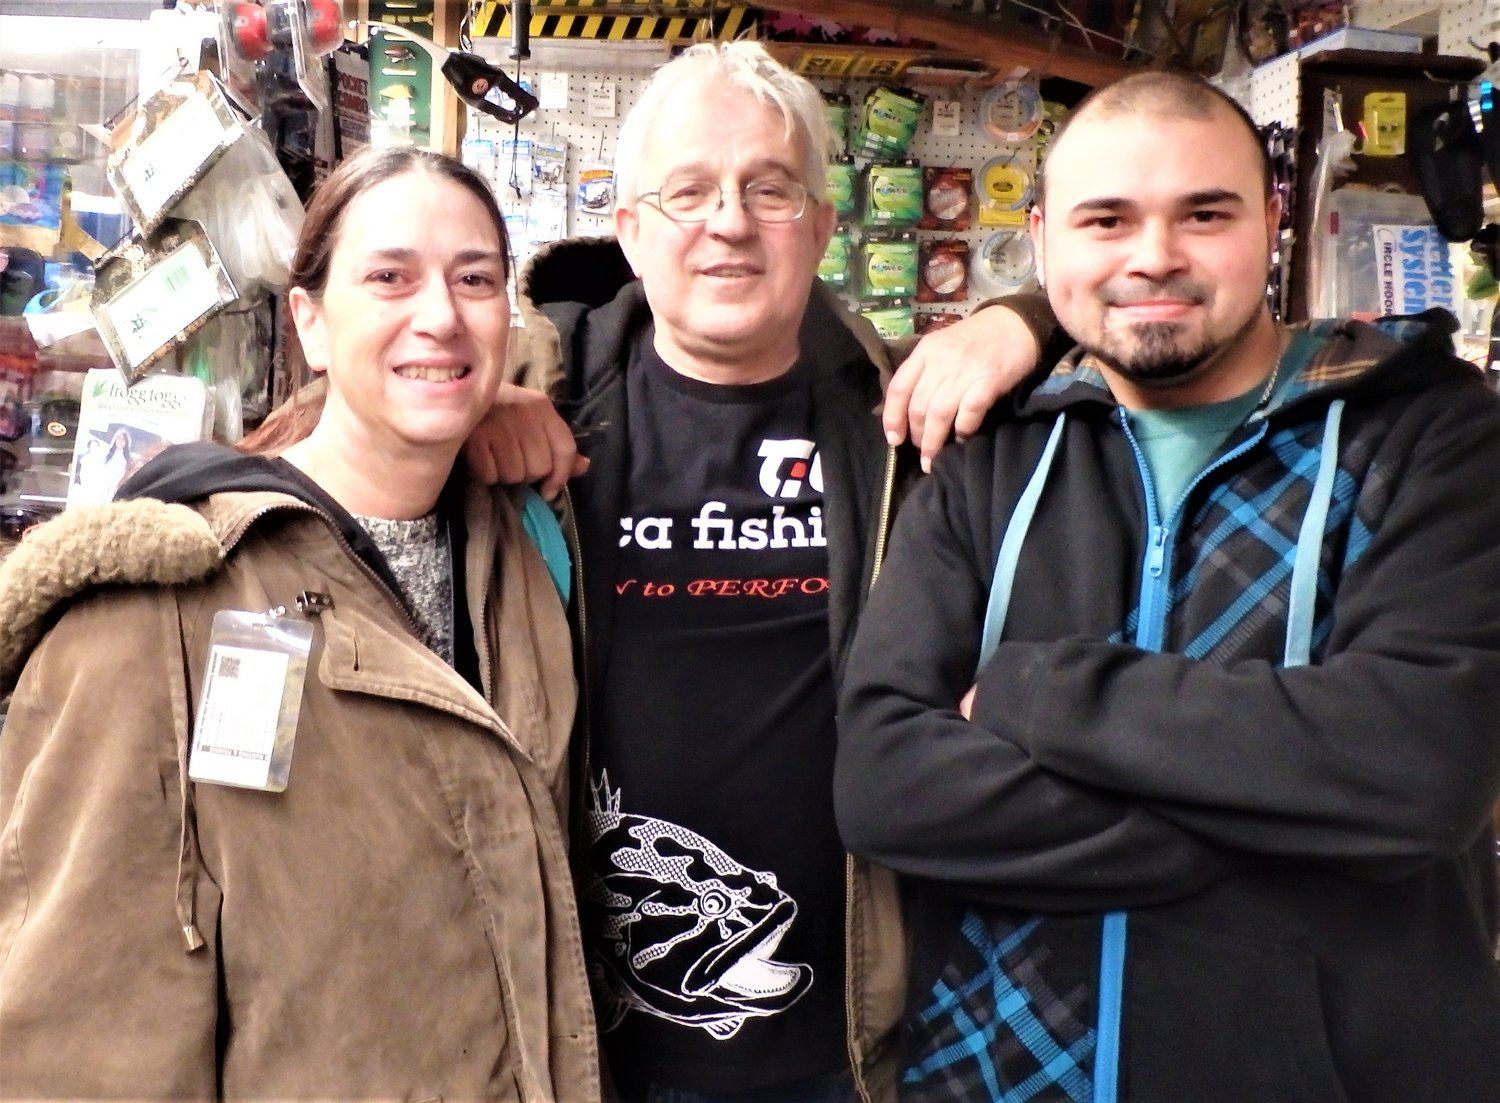 Getting ready: Manny Macedo (center) of Lucky Bait, Warren with customers Brenda Ferreira of East Providence and her son Dan Decrescenzo as they stopped by the store to get ready for opening day.